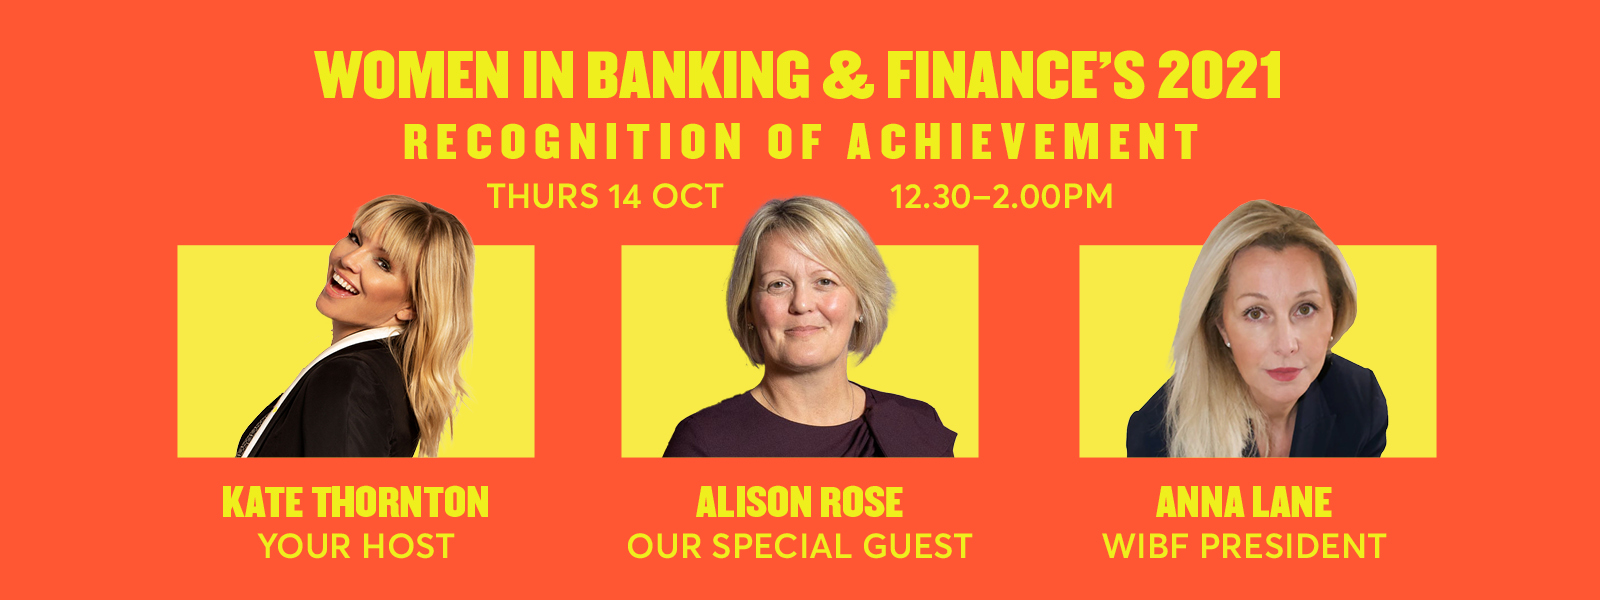 Women in Banking and Finance's 2021 recognition of achievement